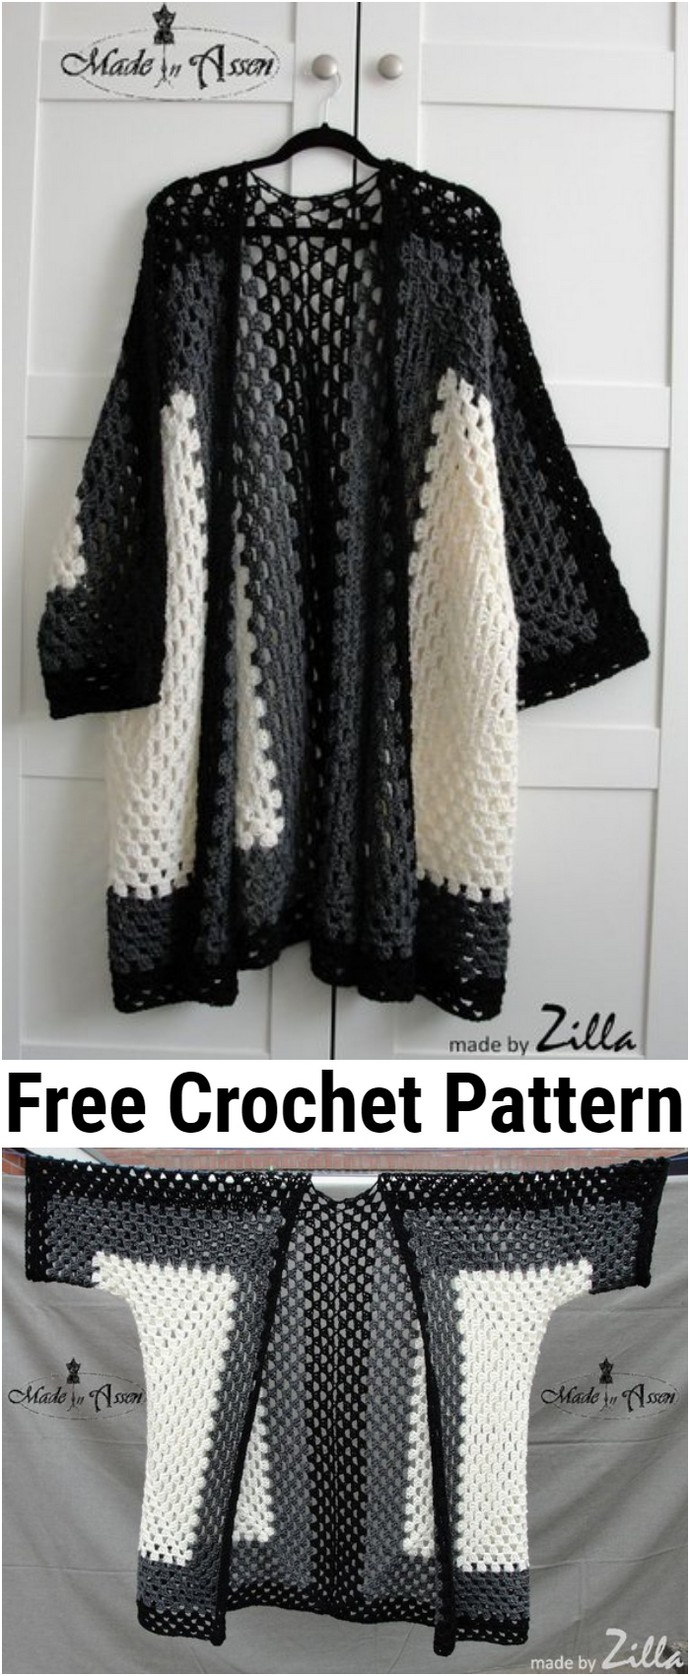 Free Crochet Hex No Hex Cardigan